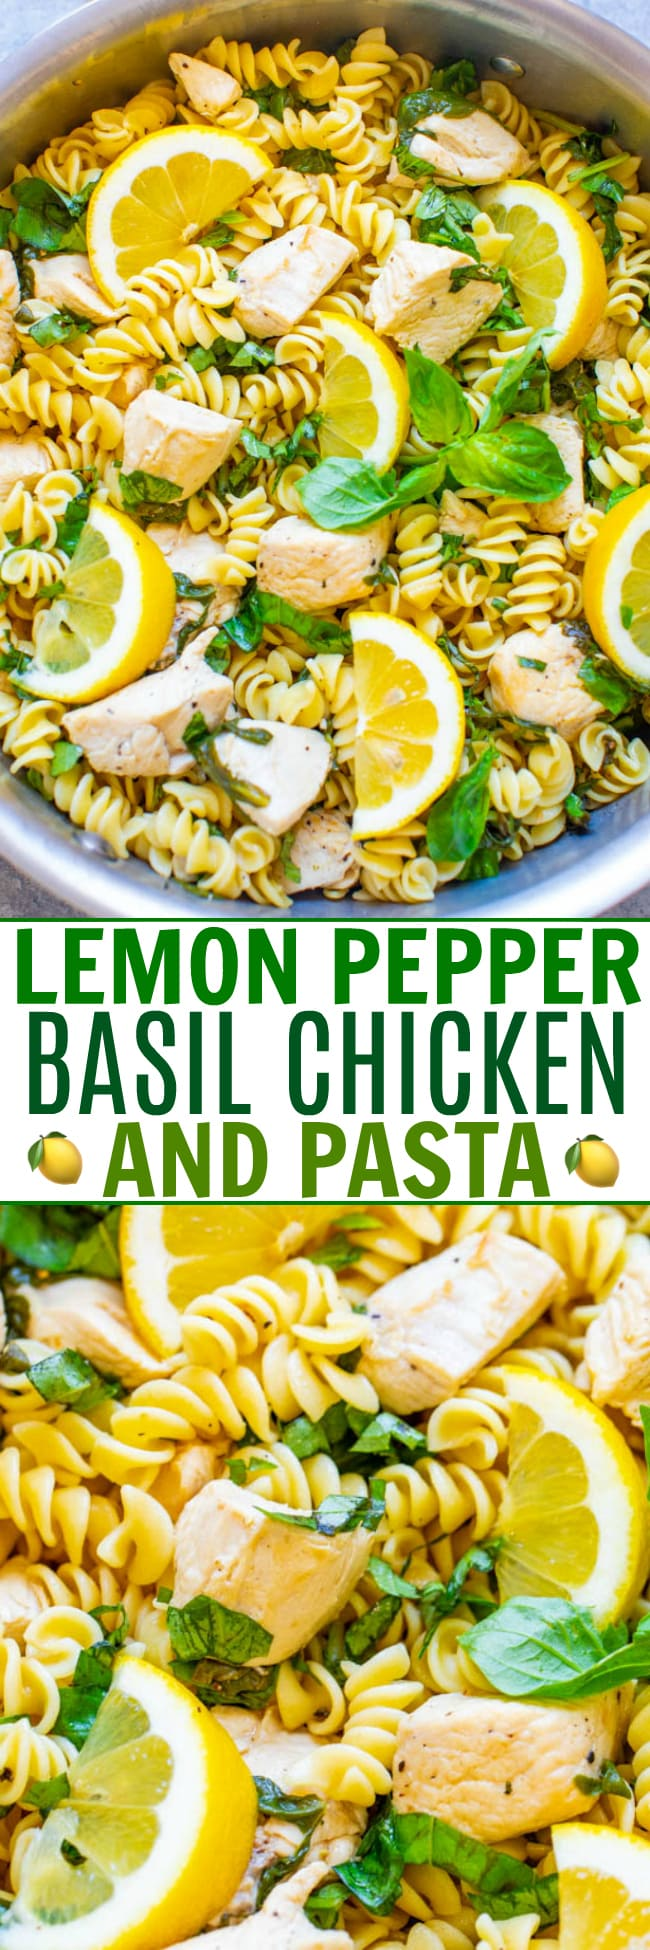 Lemon Pepper Chicken Pasta — EASY and ready in 15 minutes with comforting pasta, juicy chicken, and there is so much ZESTY flavor from the lemon, basil, and spinach!! A family favorite that's perfect for busy weeknights!!